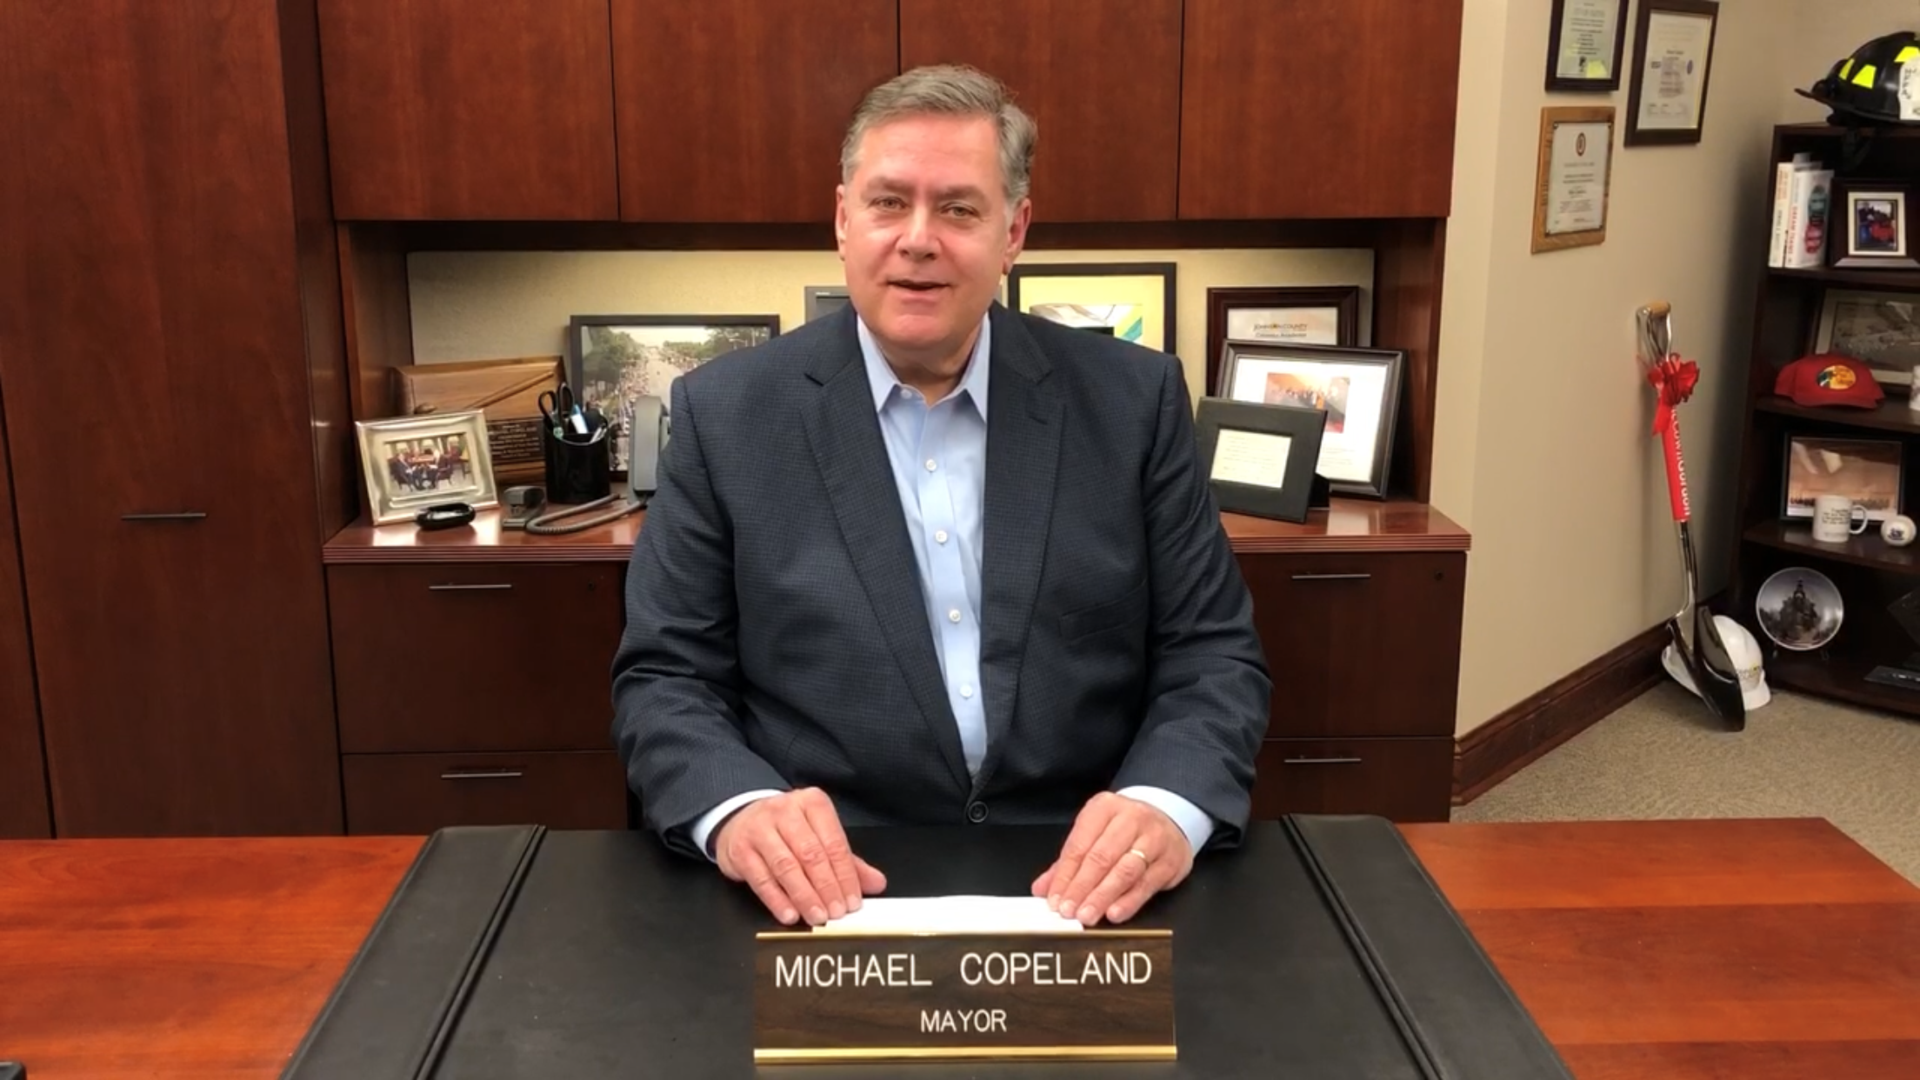 Mayor Copeland at his desk